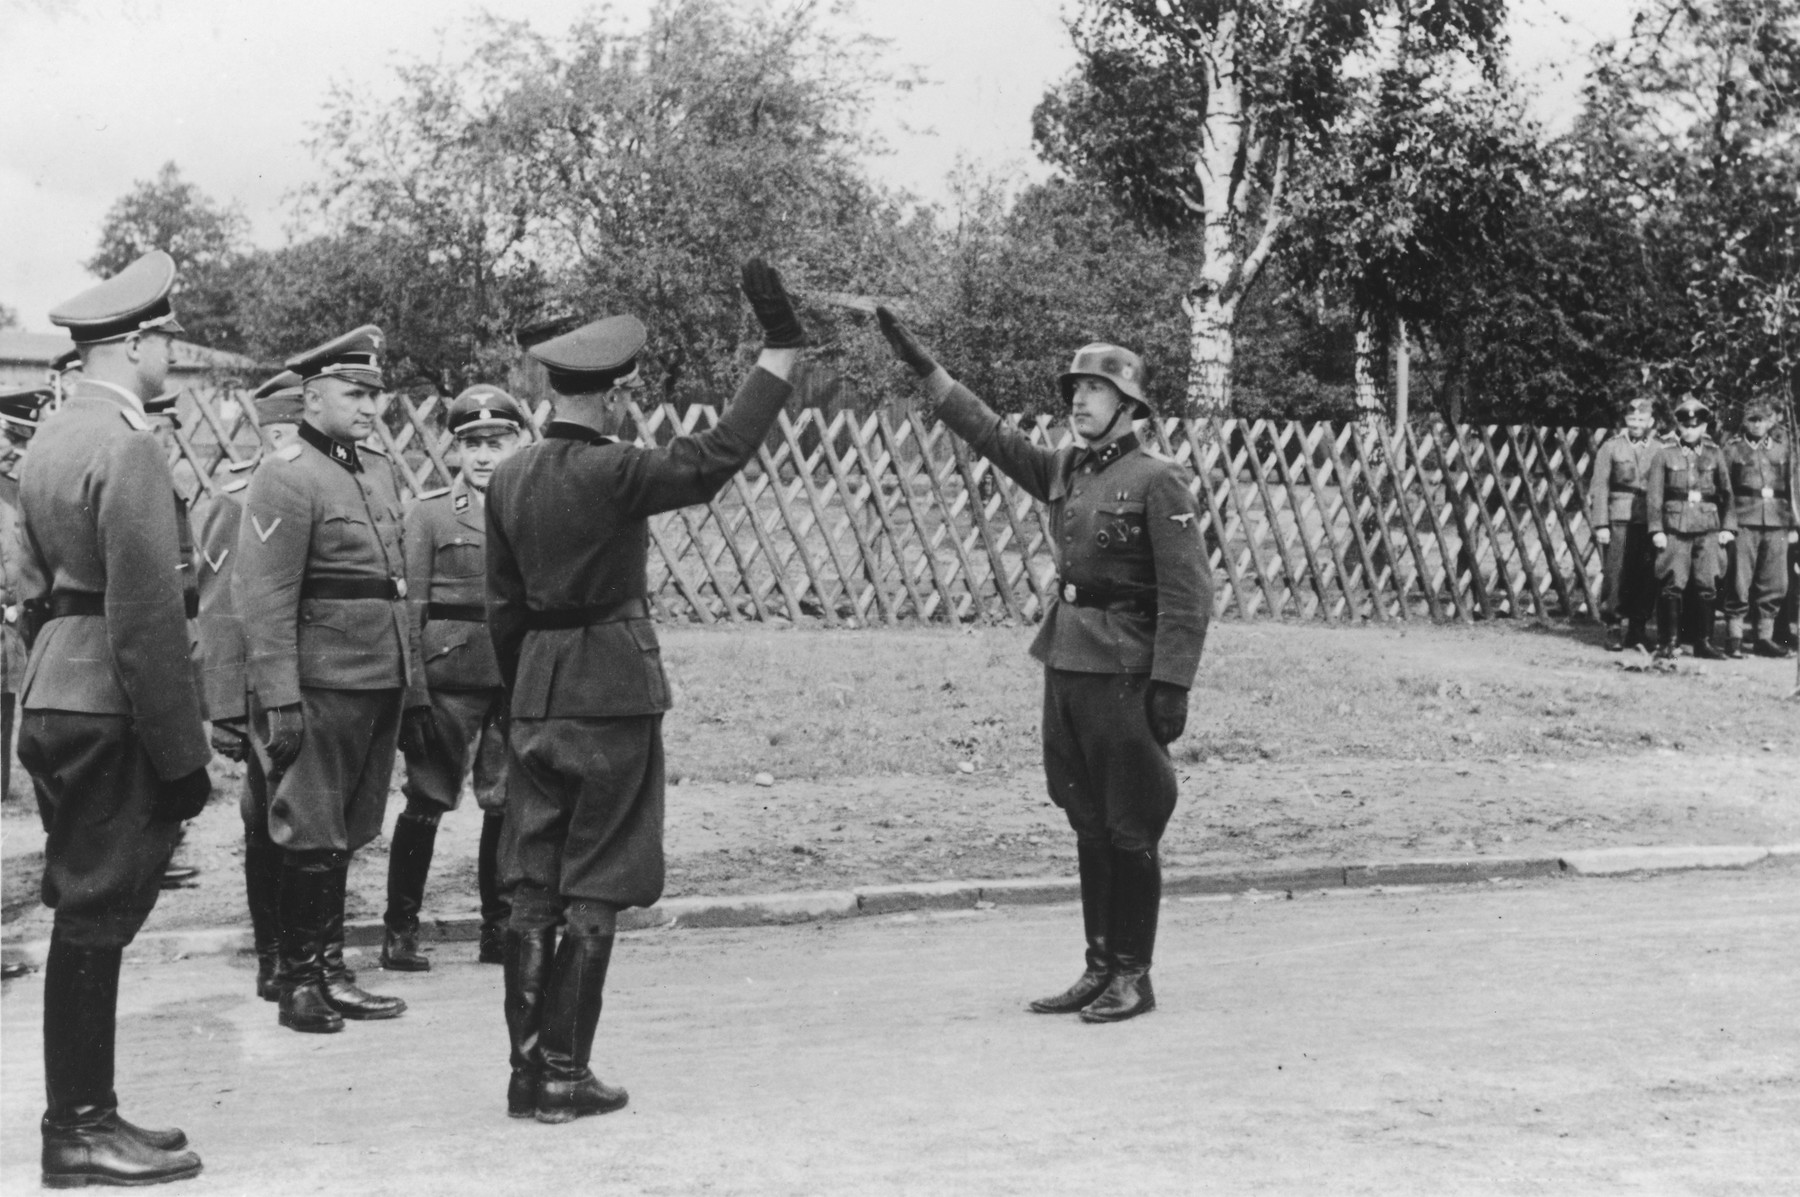 "A Nazi soldier salutes an officer, while several other officers stand in the background during the dedication of a new SS hospital in Auschwitz.  The official caption reads ""Einweihung des SS-Lazarettes in Auschwitz"" (Dedication of the SS Hospital in Auschwitz).  Pictured on the leftt are Dr. Eduard Wirths, Commandant Richard Baer and Karl Bischoff."